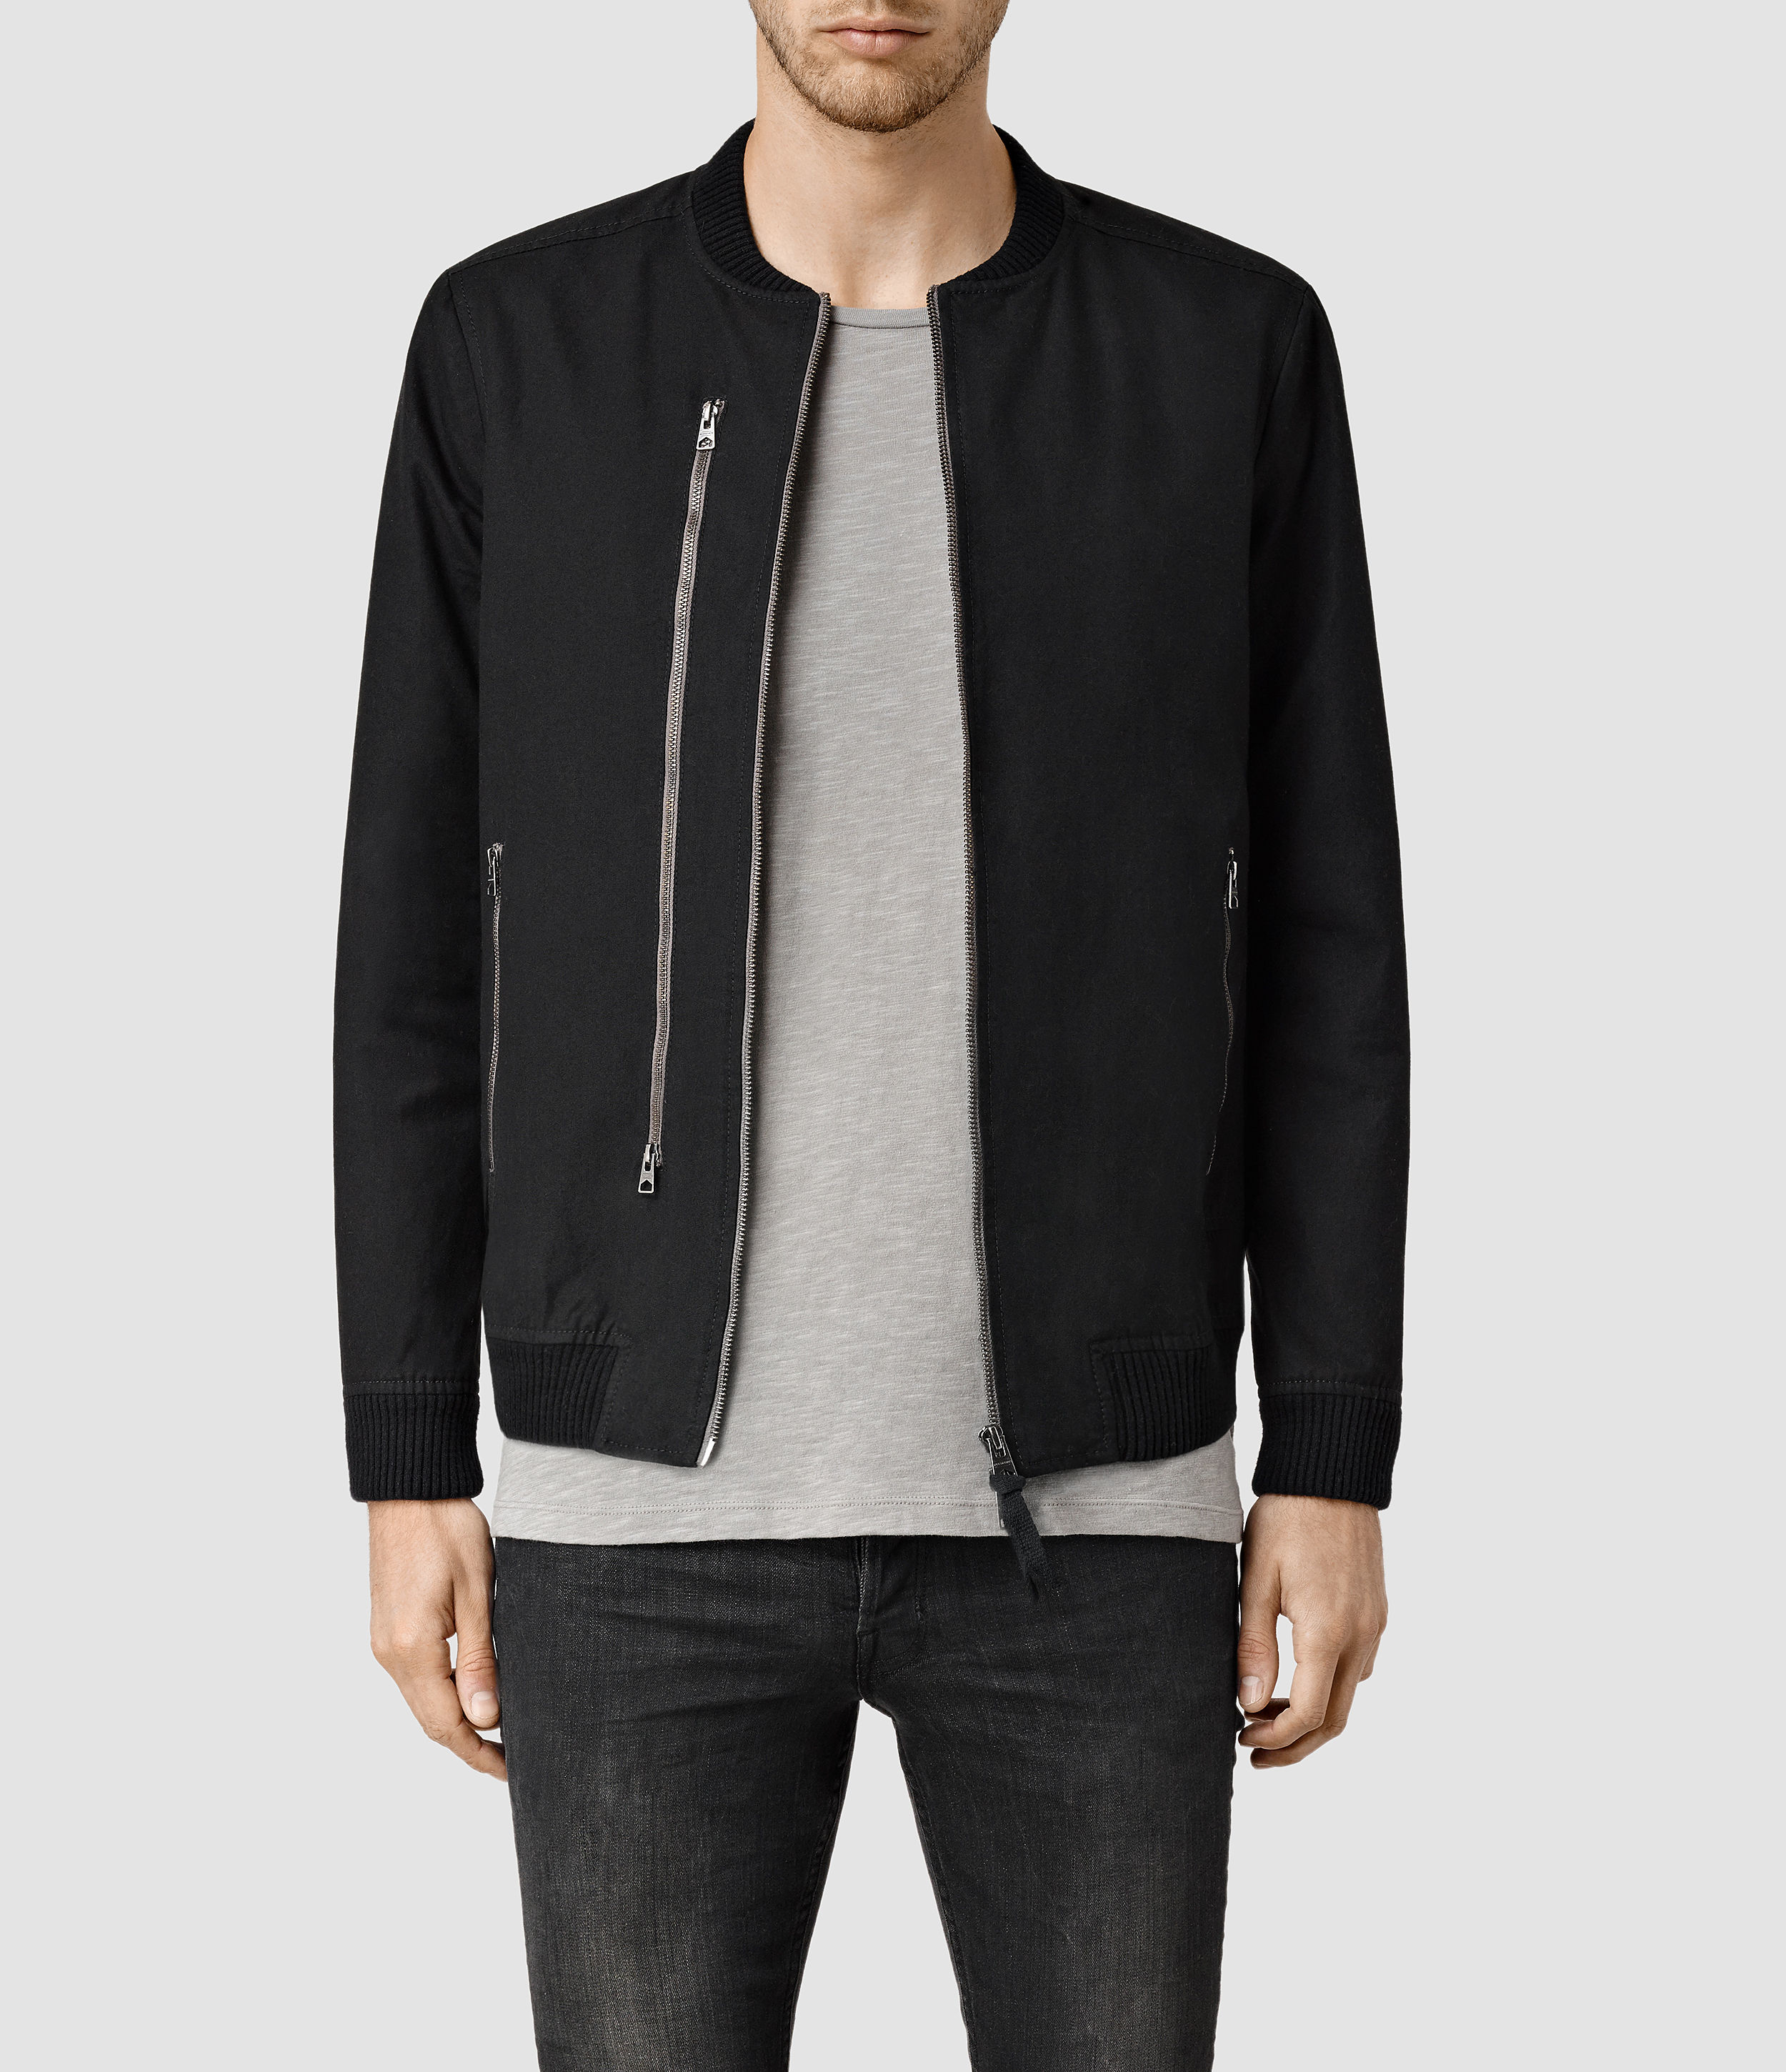 Allsaints Hamilton Bomber Jacket in Black for Men | Lyst